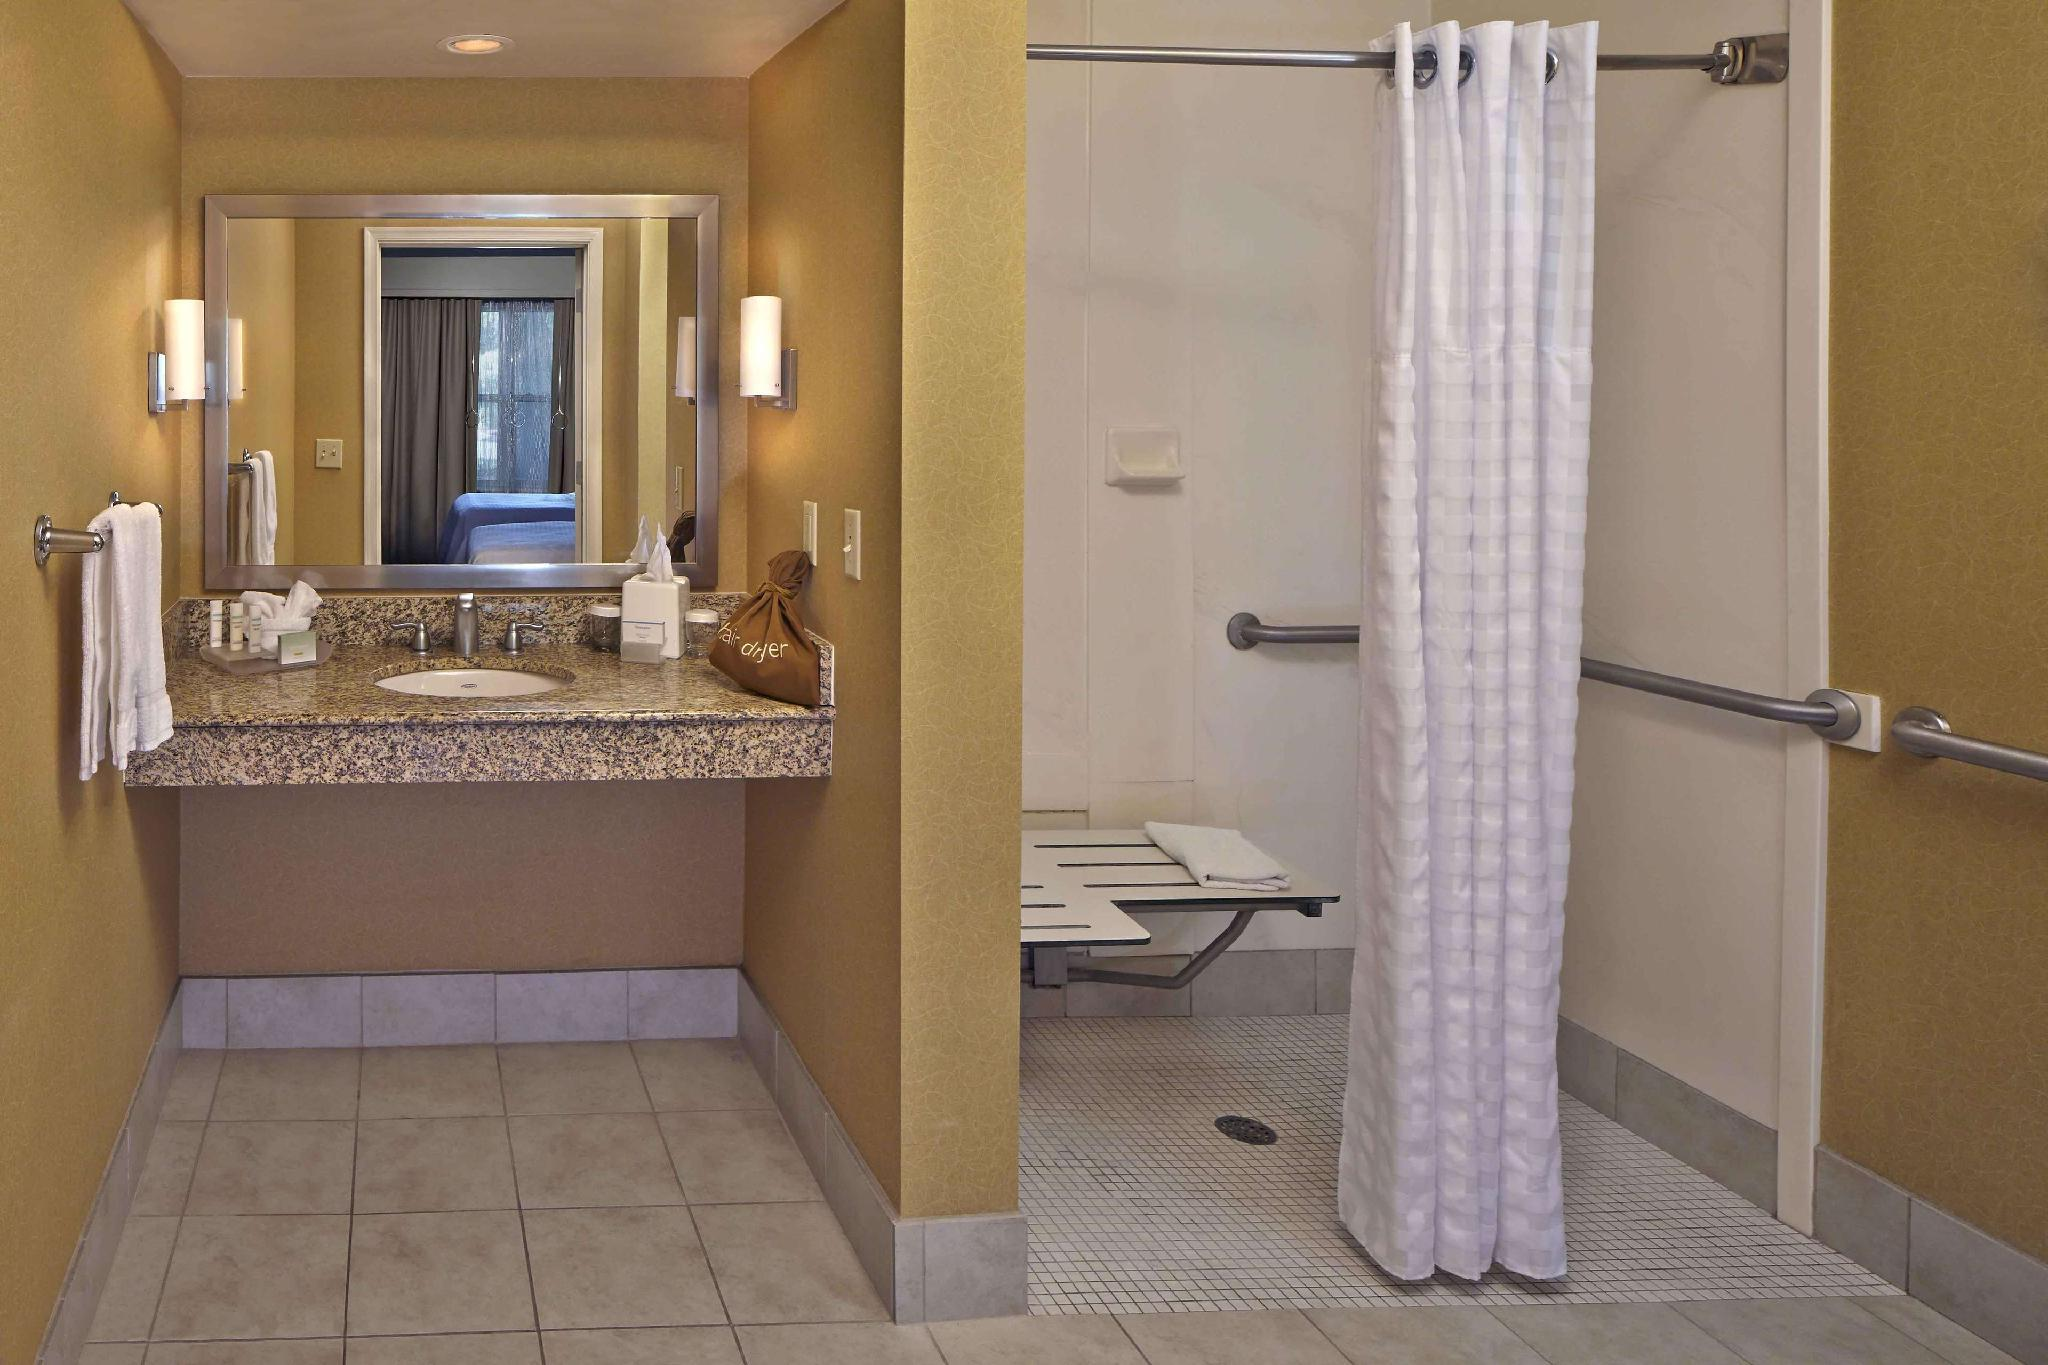 2 Double Mobility Hearing Accessible Roll In Shower Suite Non-Smoking